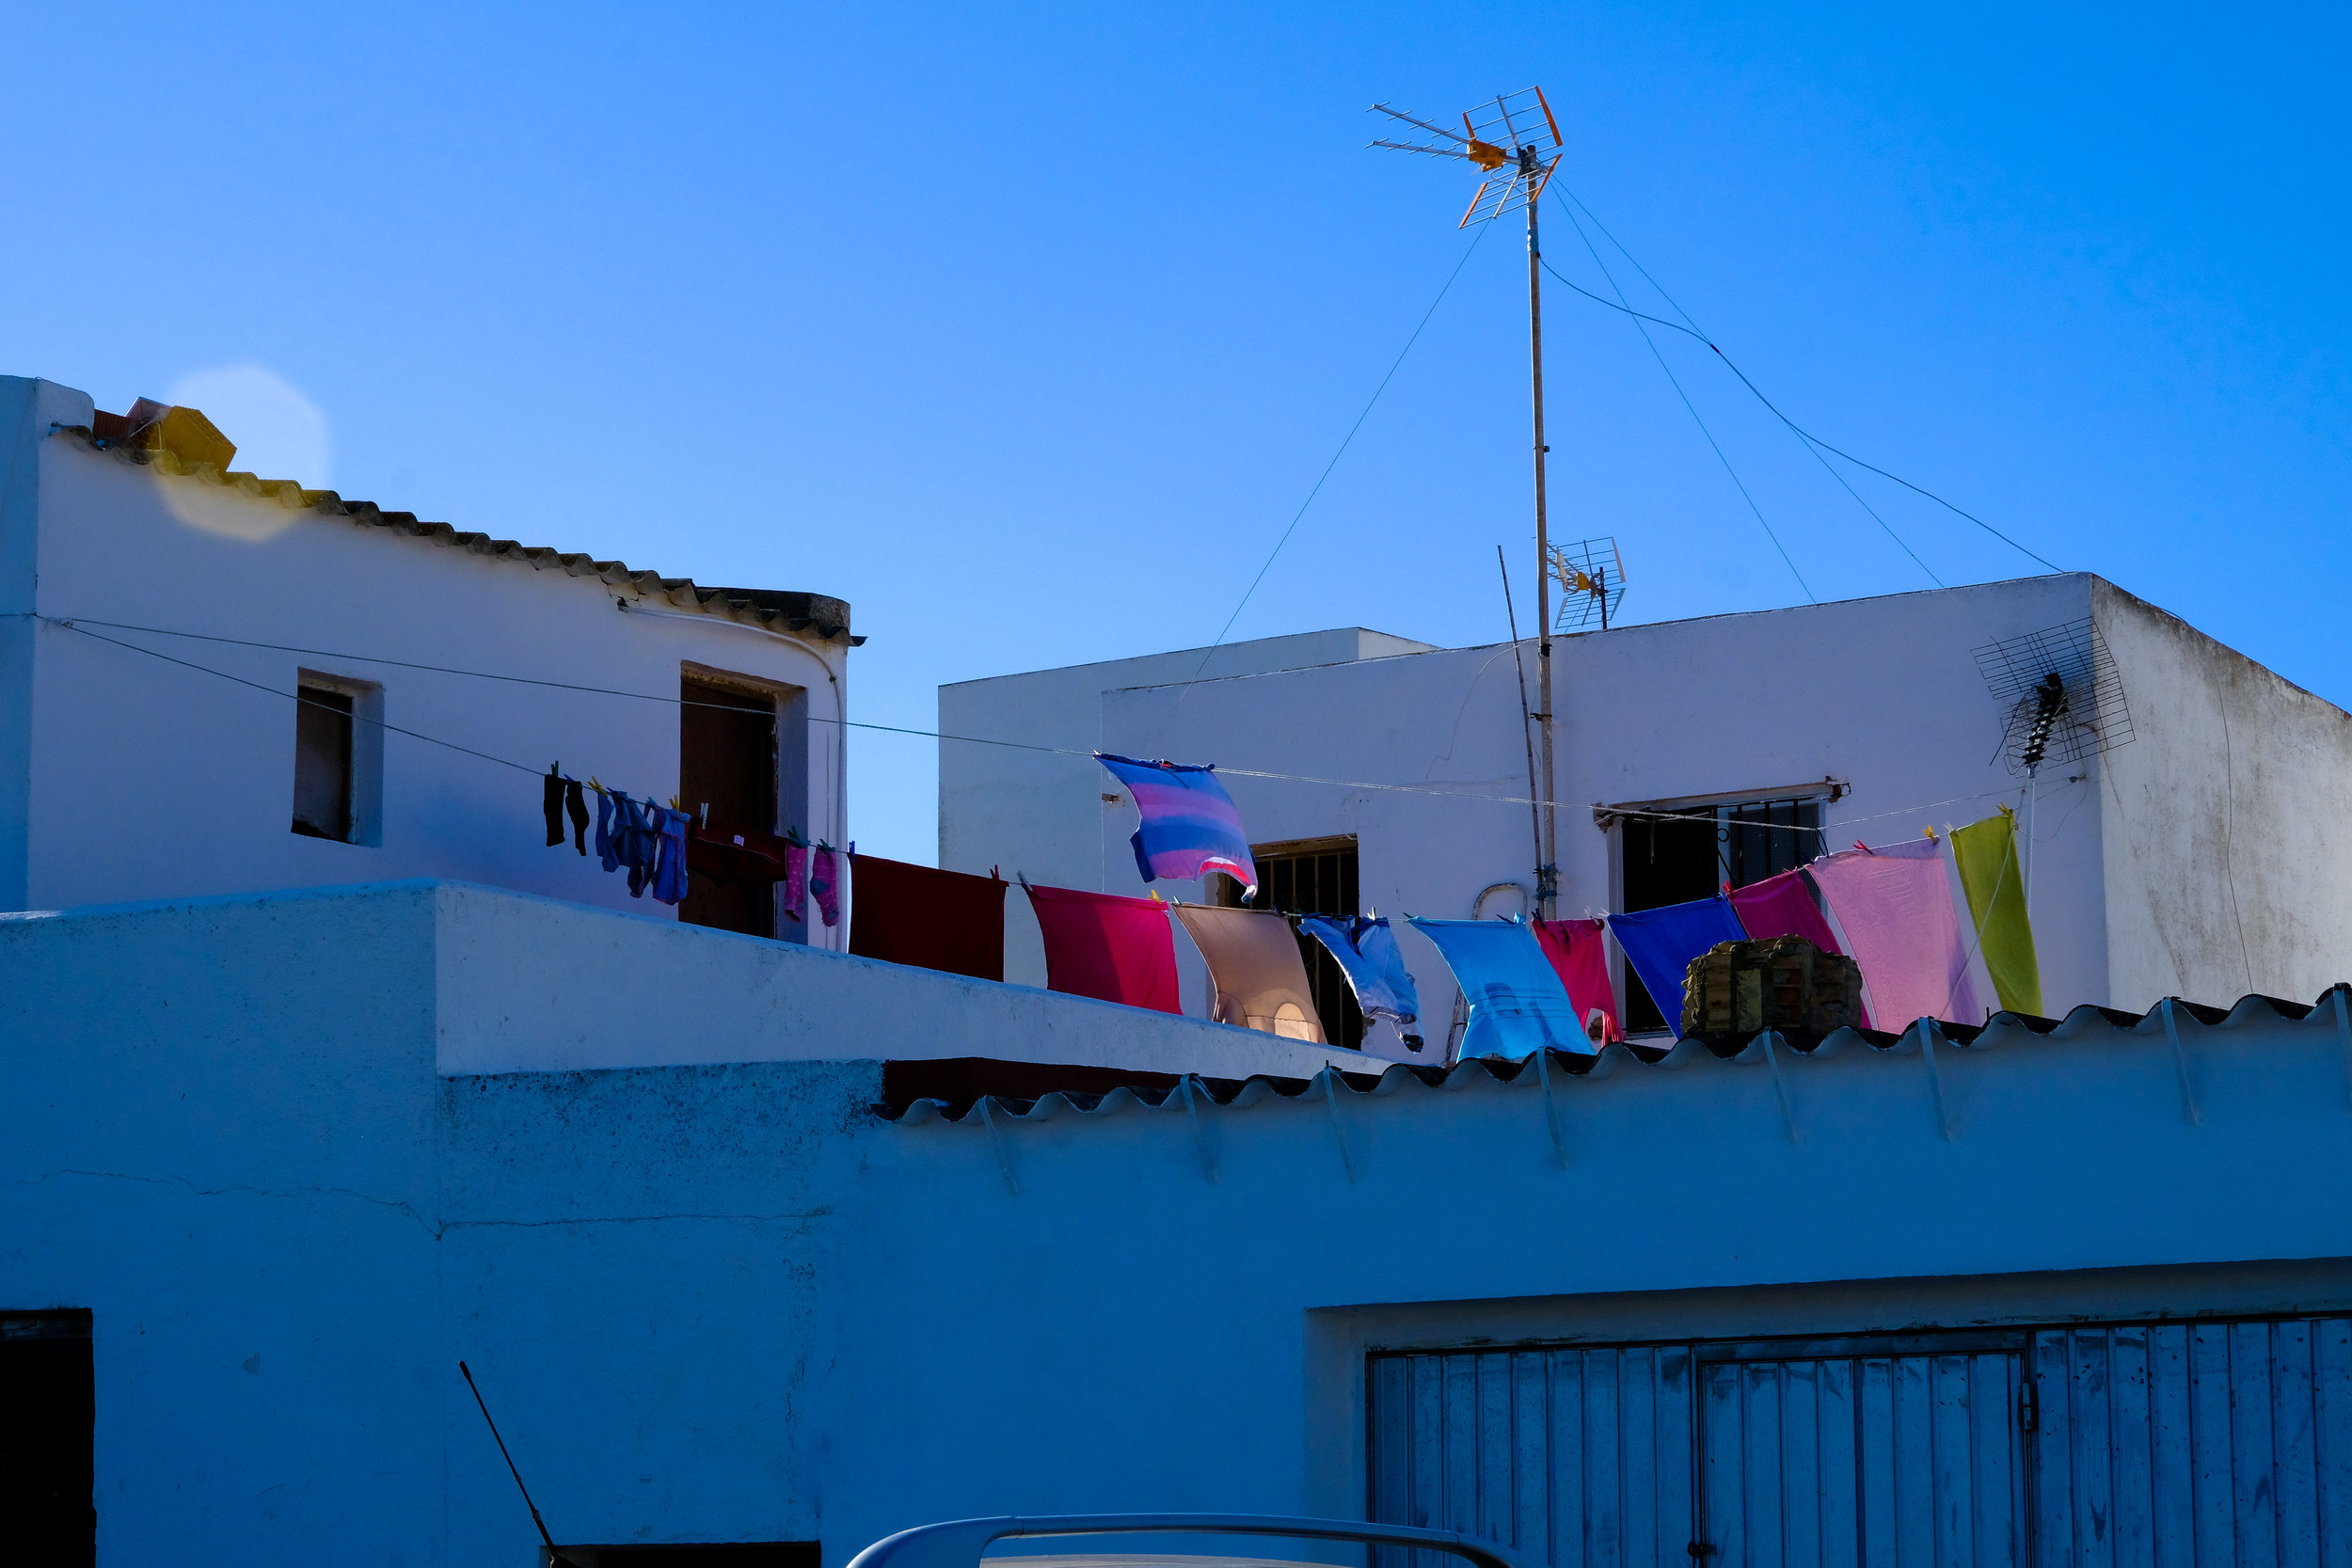 Laundry day at Barbate, Andalucia.